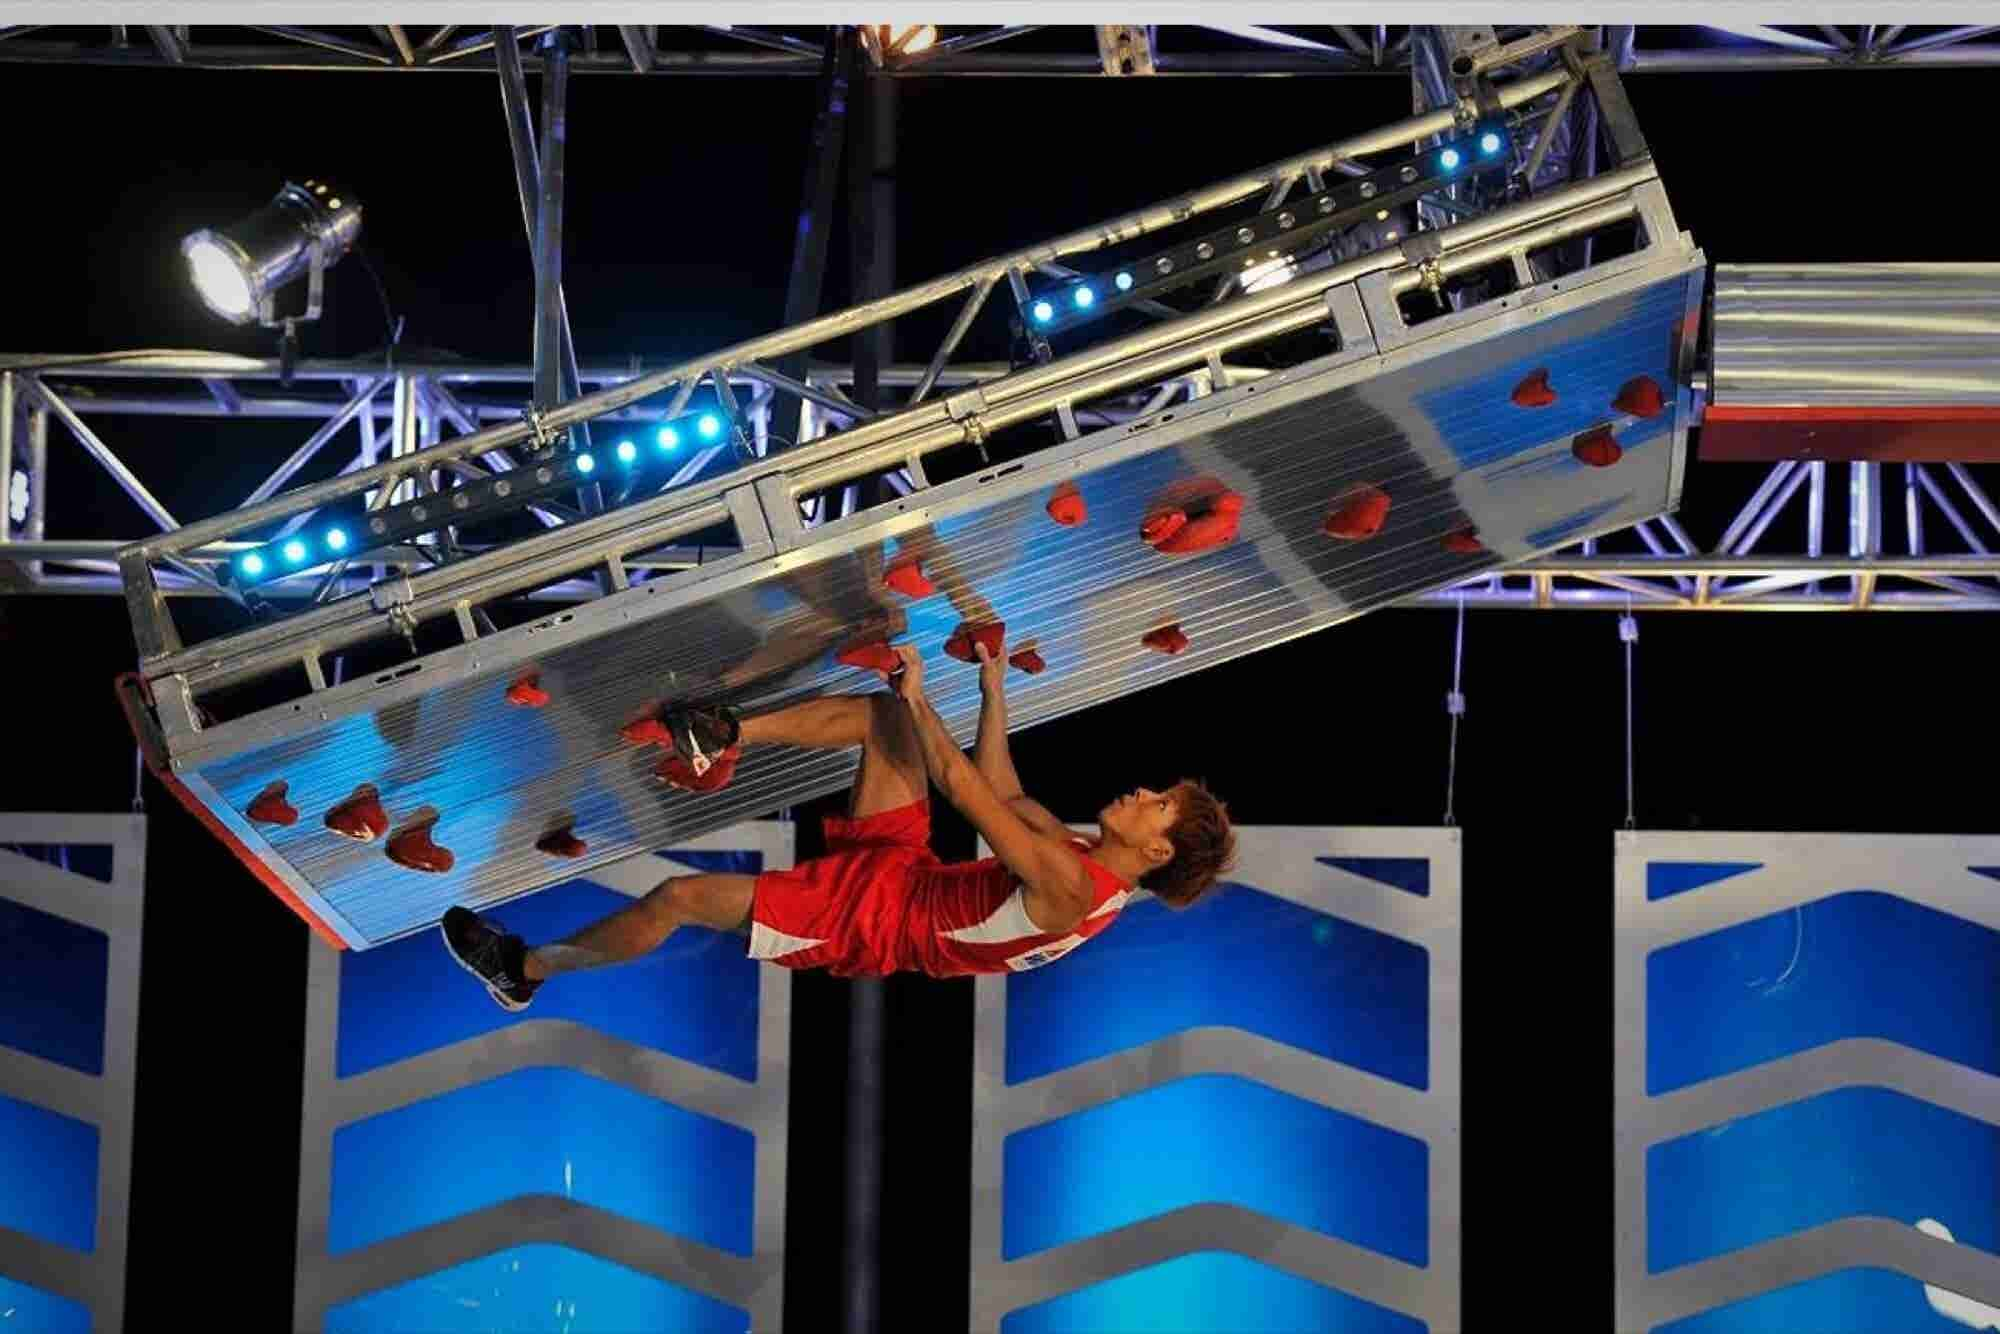 3 Lessons for Entrepreneurs From 'Ninja Warrior' Training